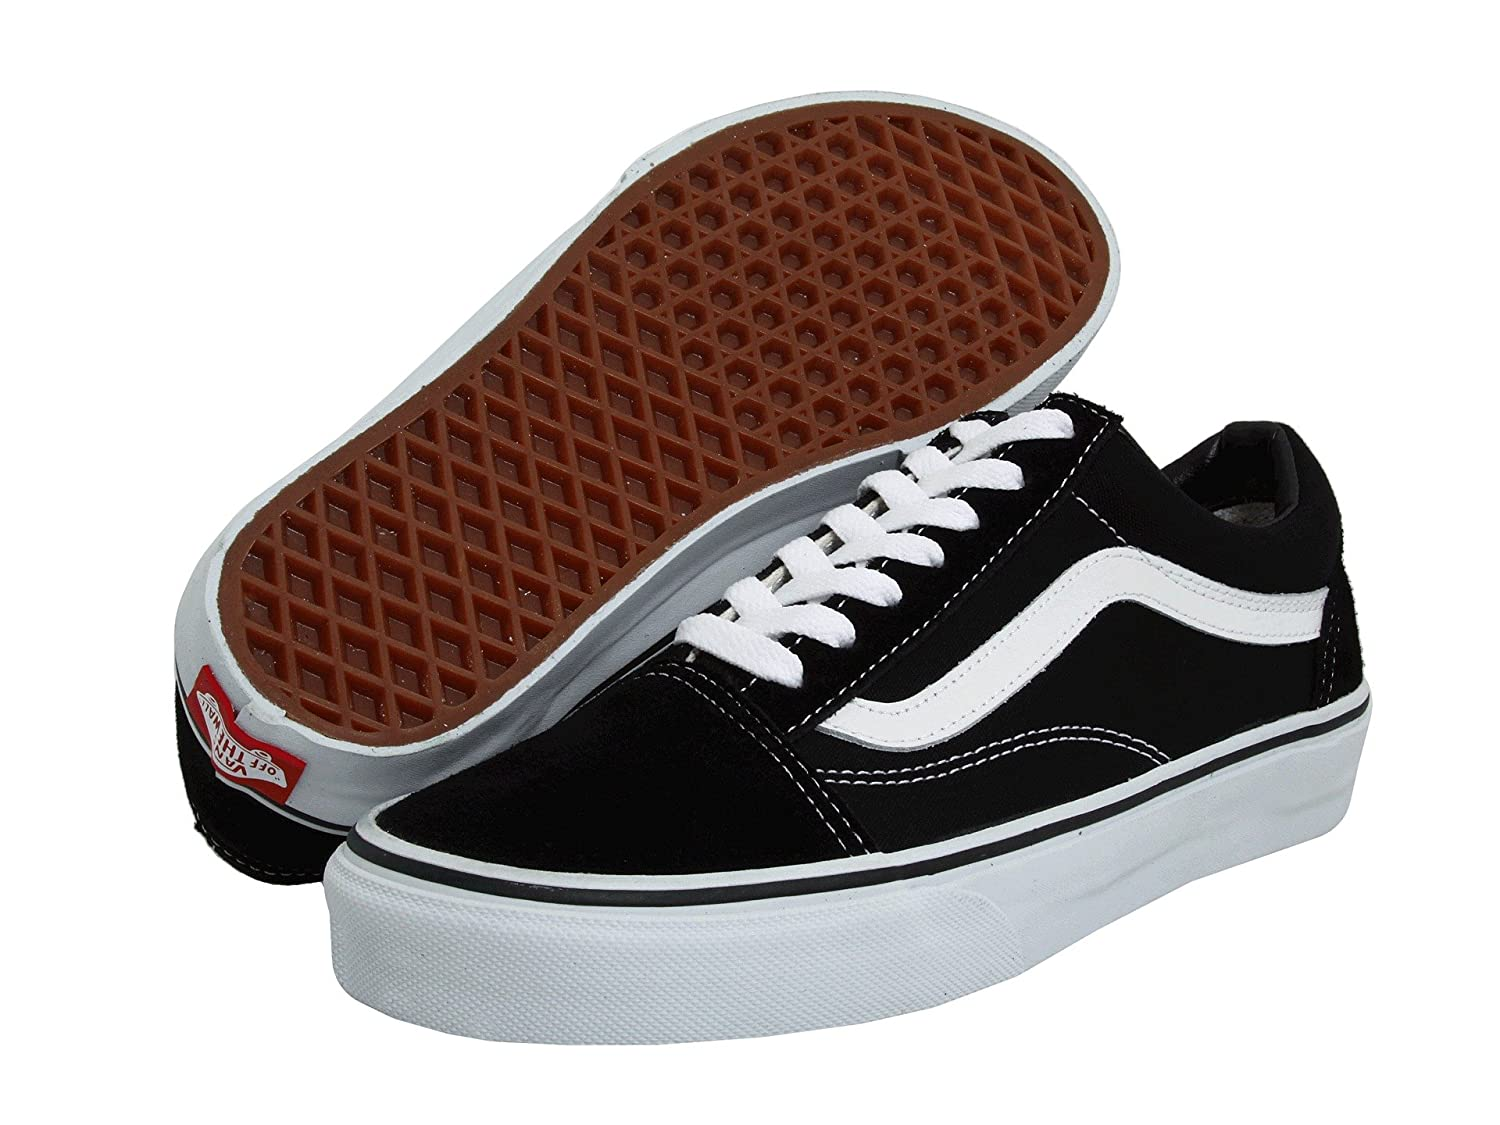 Vans Unisex Old Skool Classic Skate Shoes B075W7K3QV 13.5 B(M) US Women / 12 D(M) US Men|(Canvas) Black/White